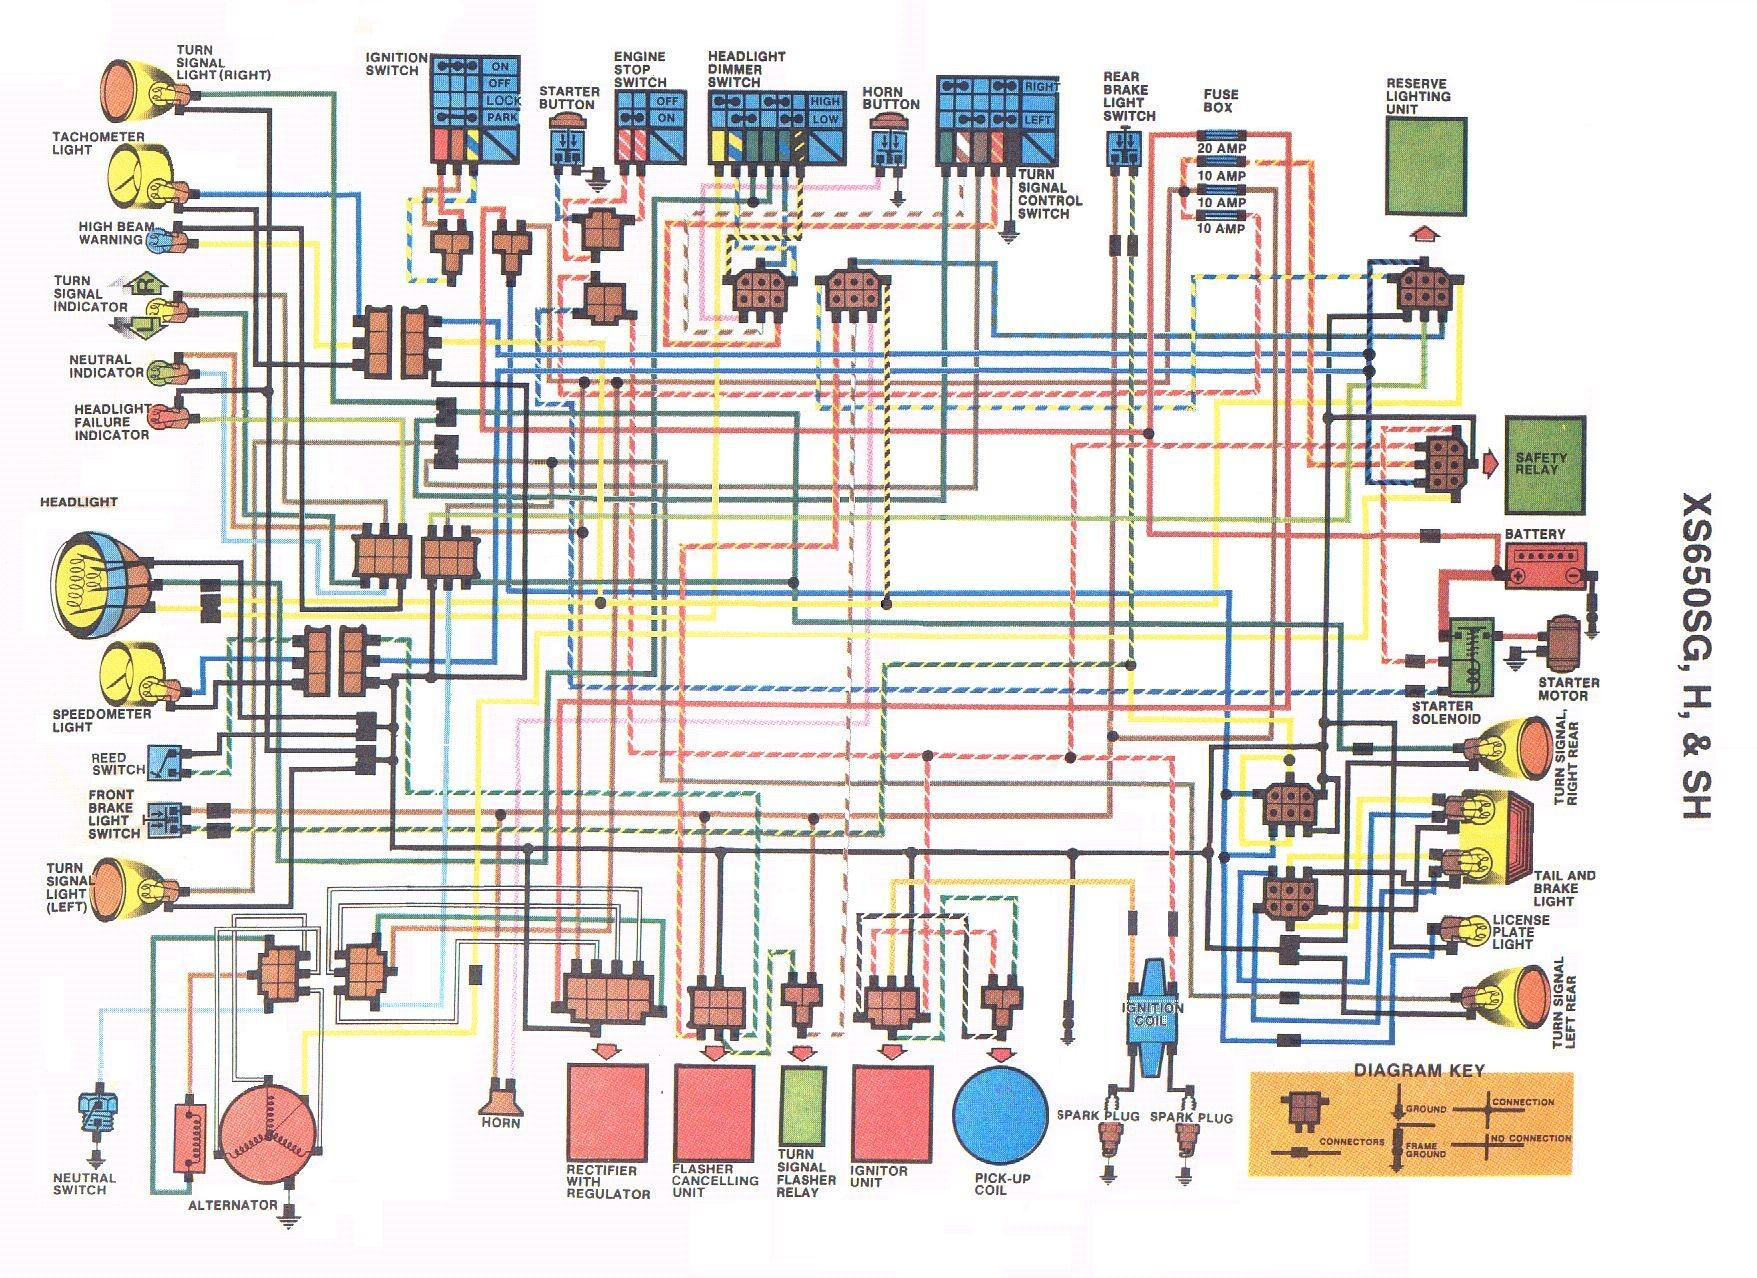 Xs650 Engine Diagram Xs650 Wiring Motorcycle Pinterest Of Xs650 Engine Diagram